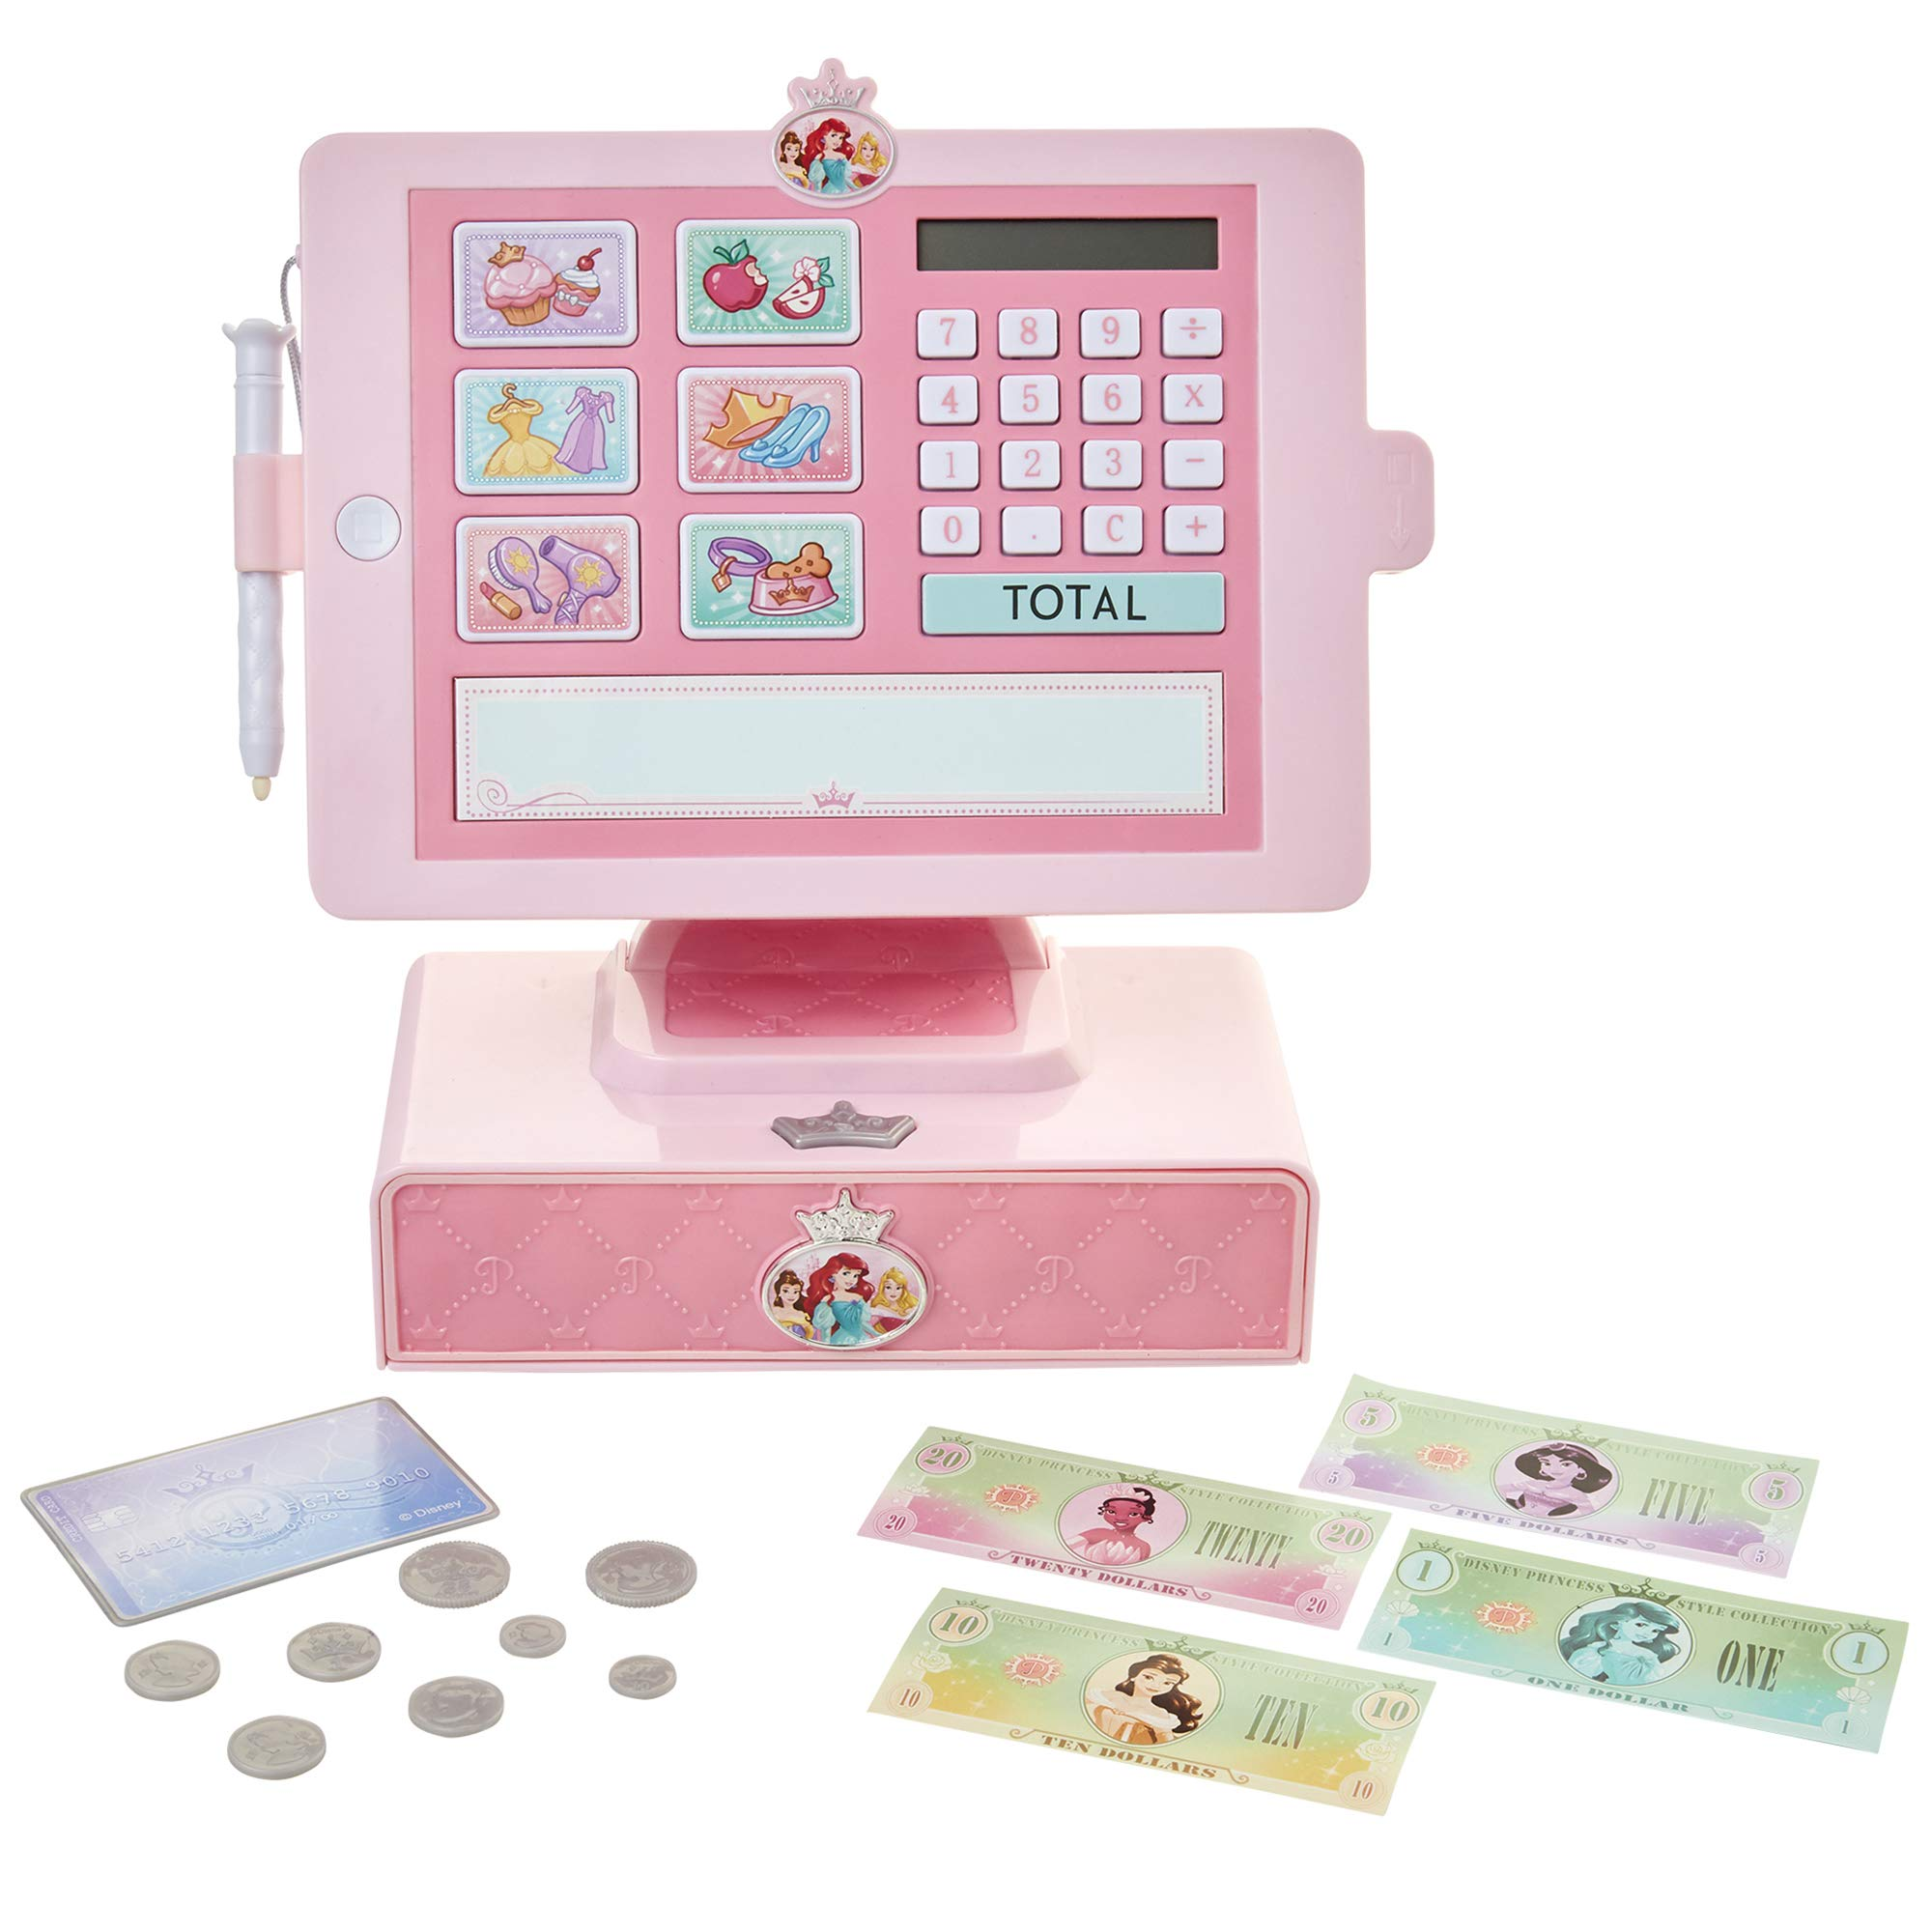 Disney Princess Style Collection Shop 'N Play Cash Register with Sounds & Phrases for Girls Ages 3+ by Disney Princess